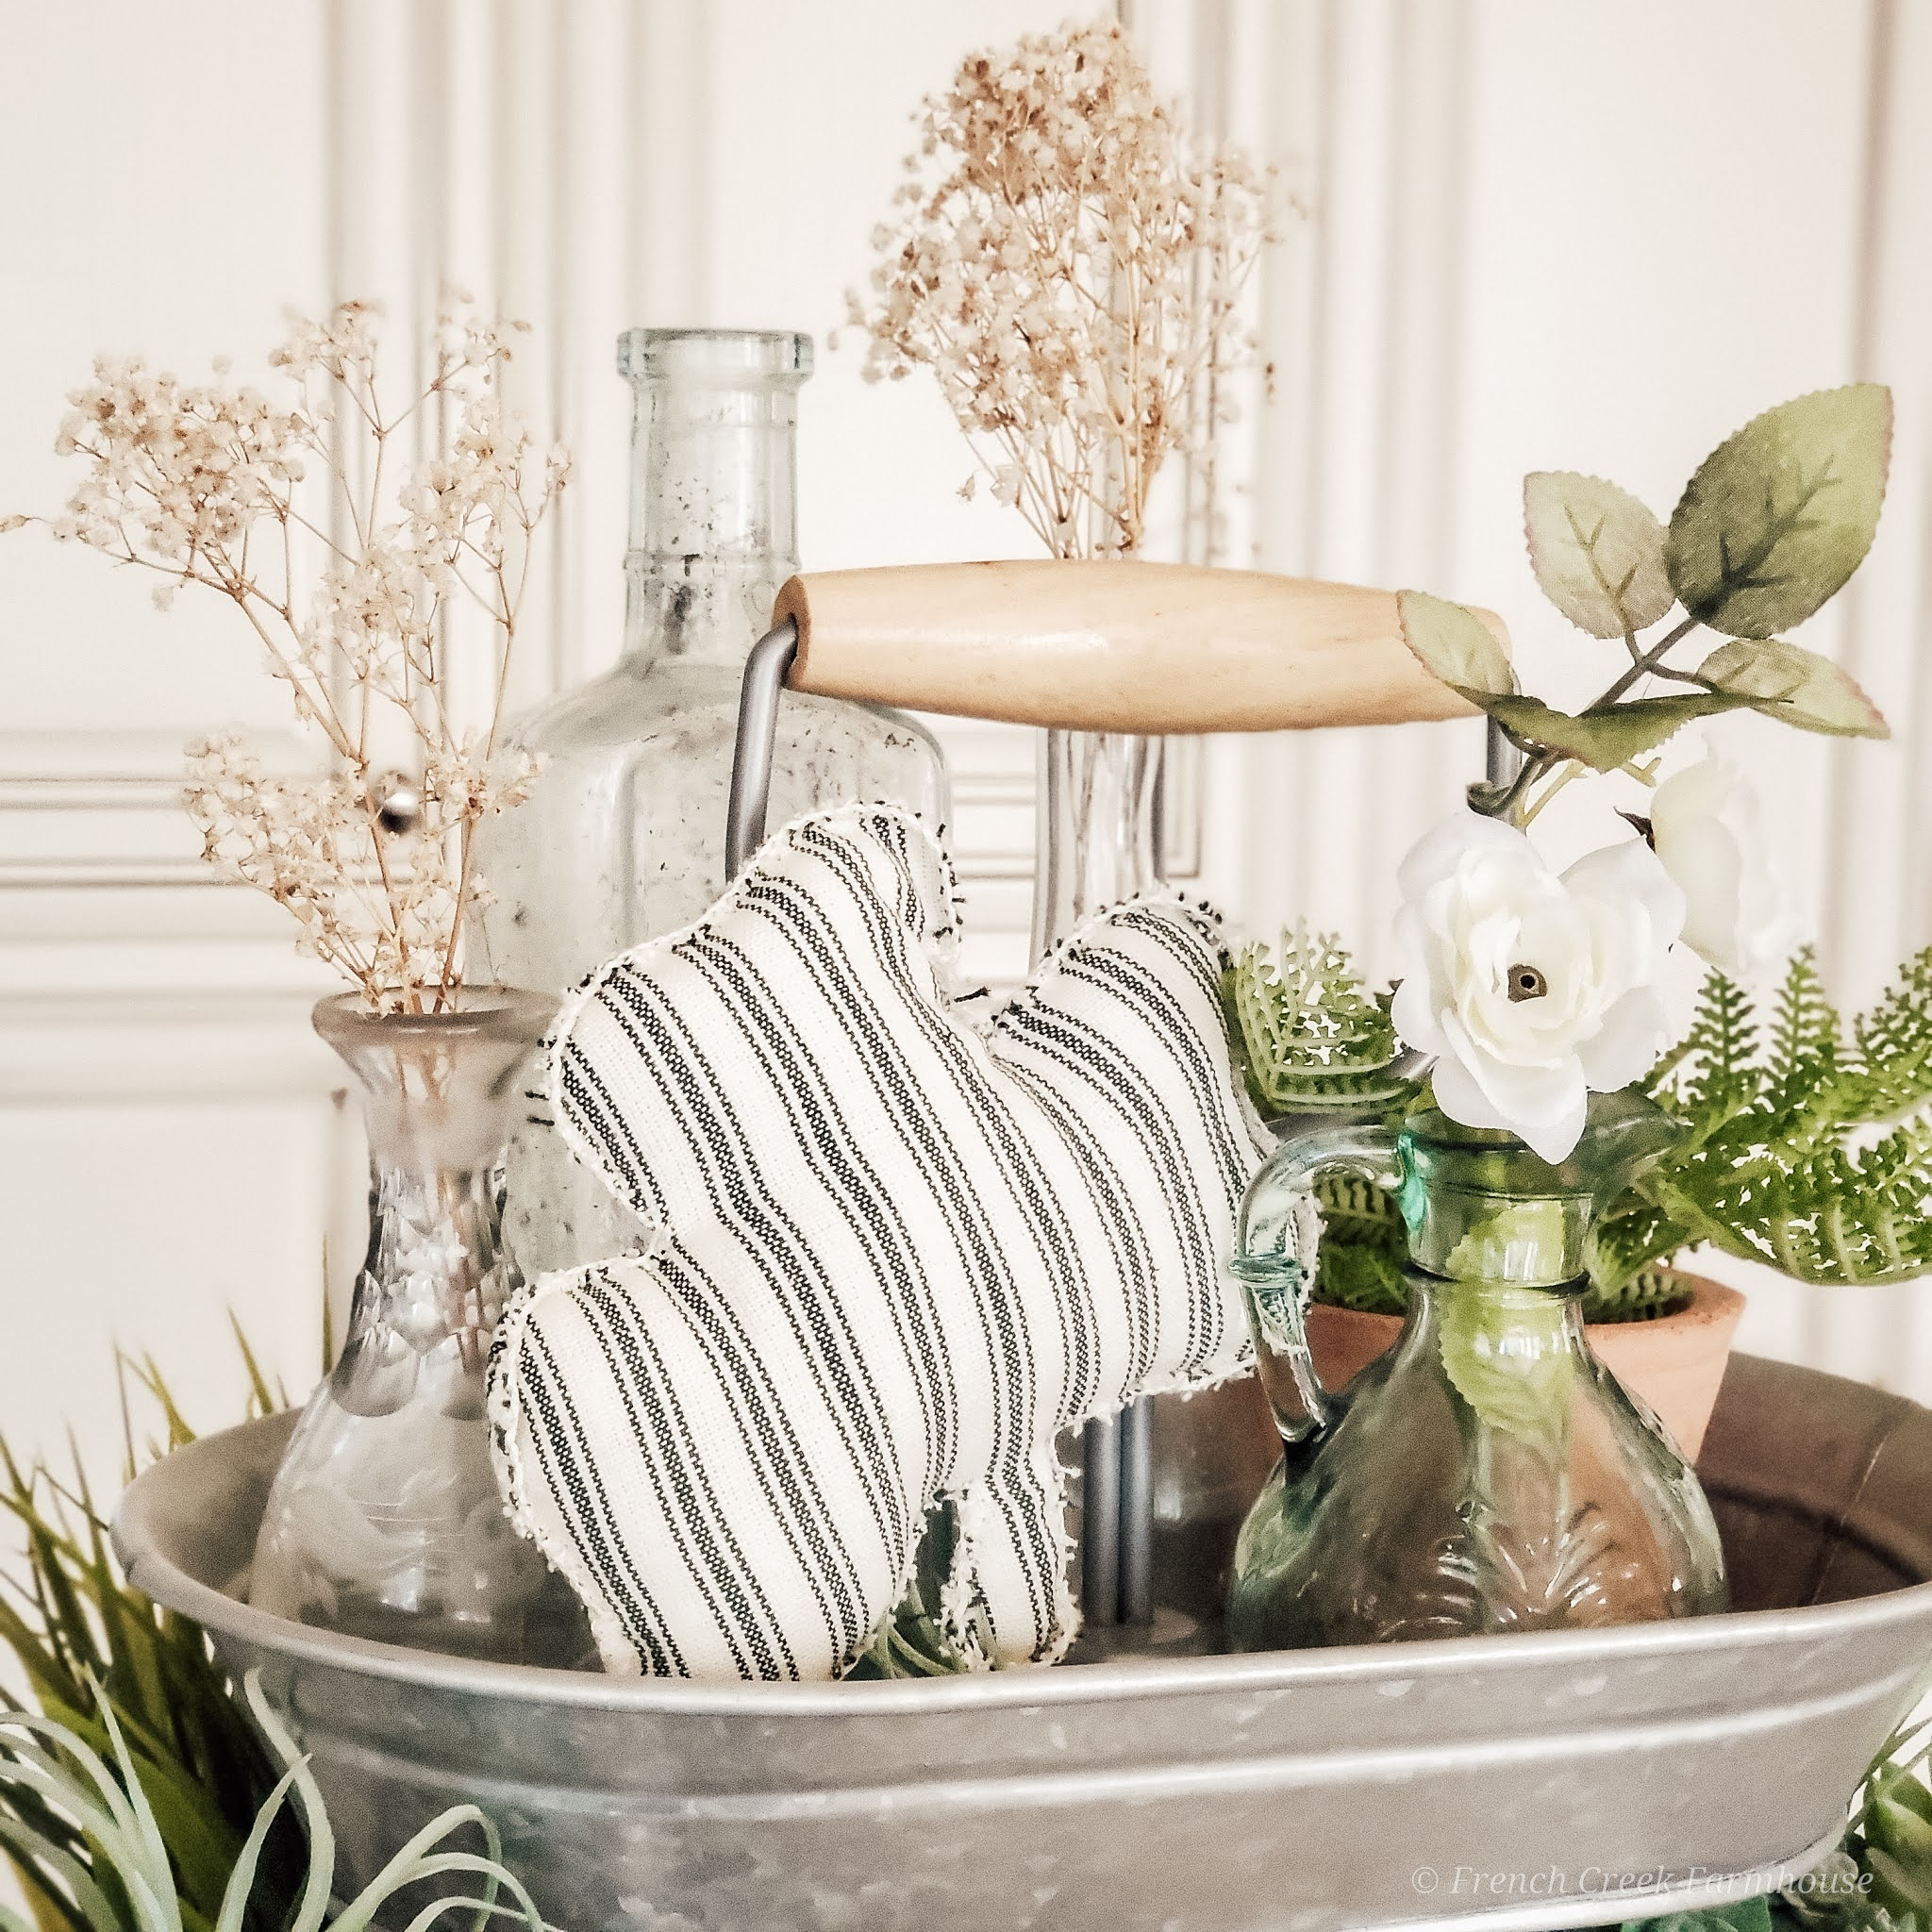 St. Patrick's Day Tiered Tray Decorating | French Creek Farmhouse